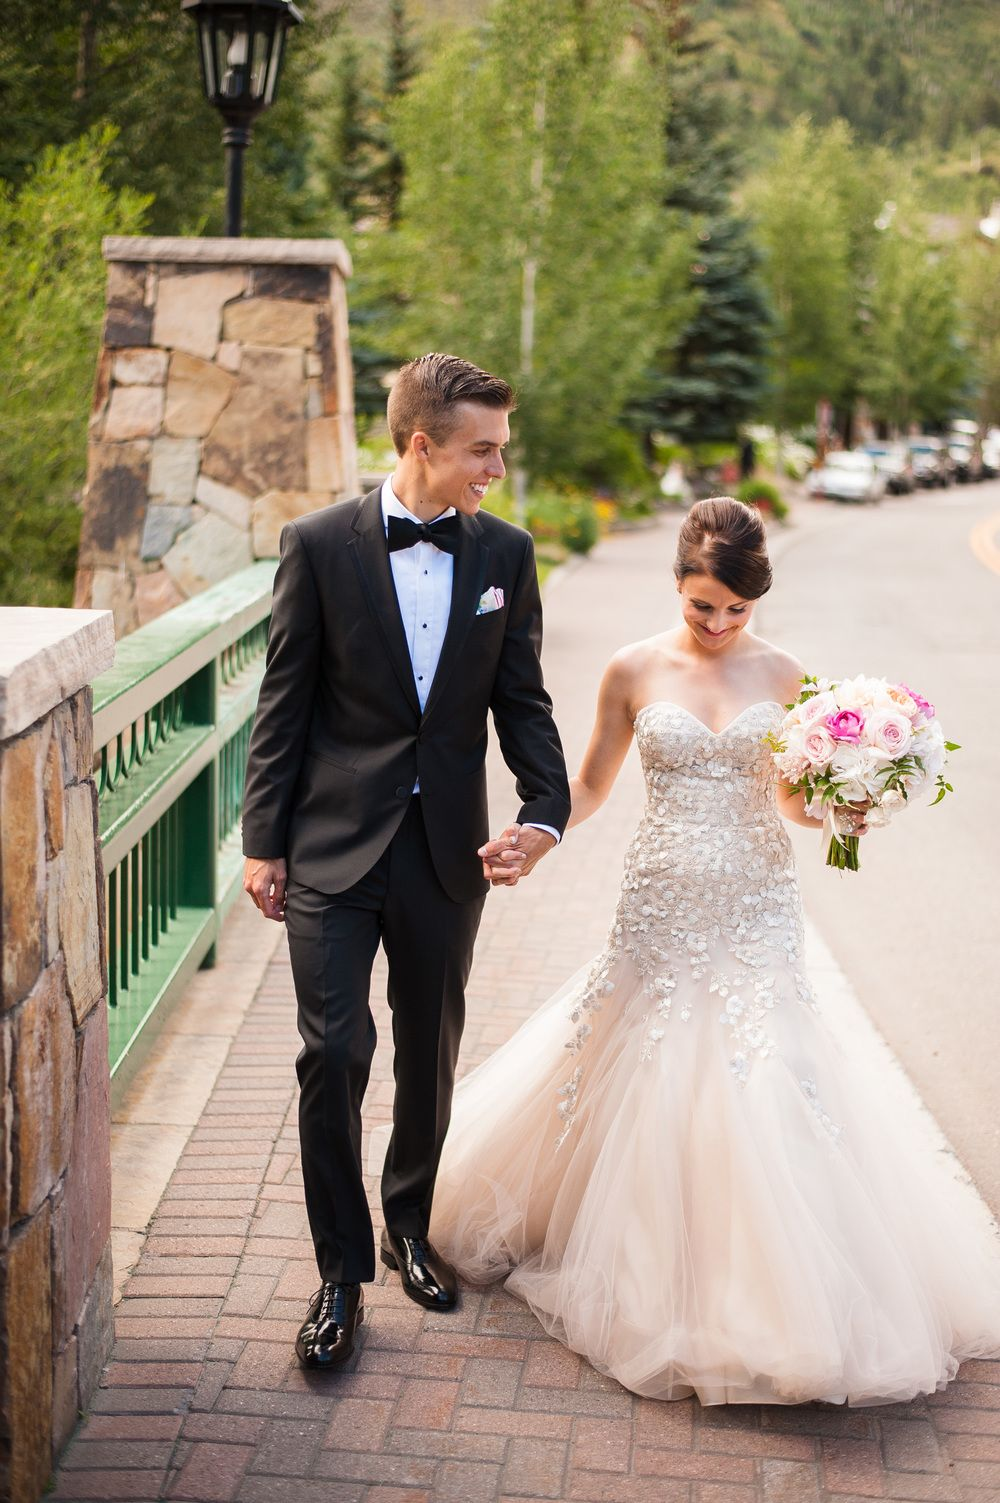 Jessica dereks extraordinary wedding at the four seasons vail jessica dereks wedding at the four seasons vail gown by liancarlo from little white dress bridal shop in denver doug treiber photography junglespirit Images